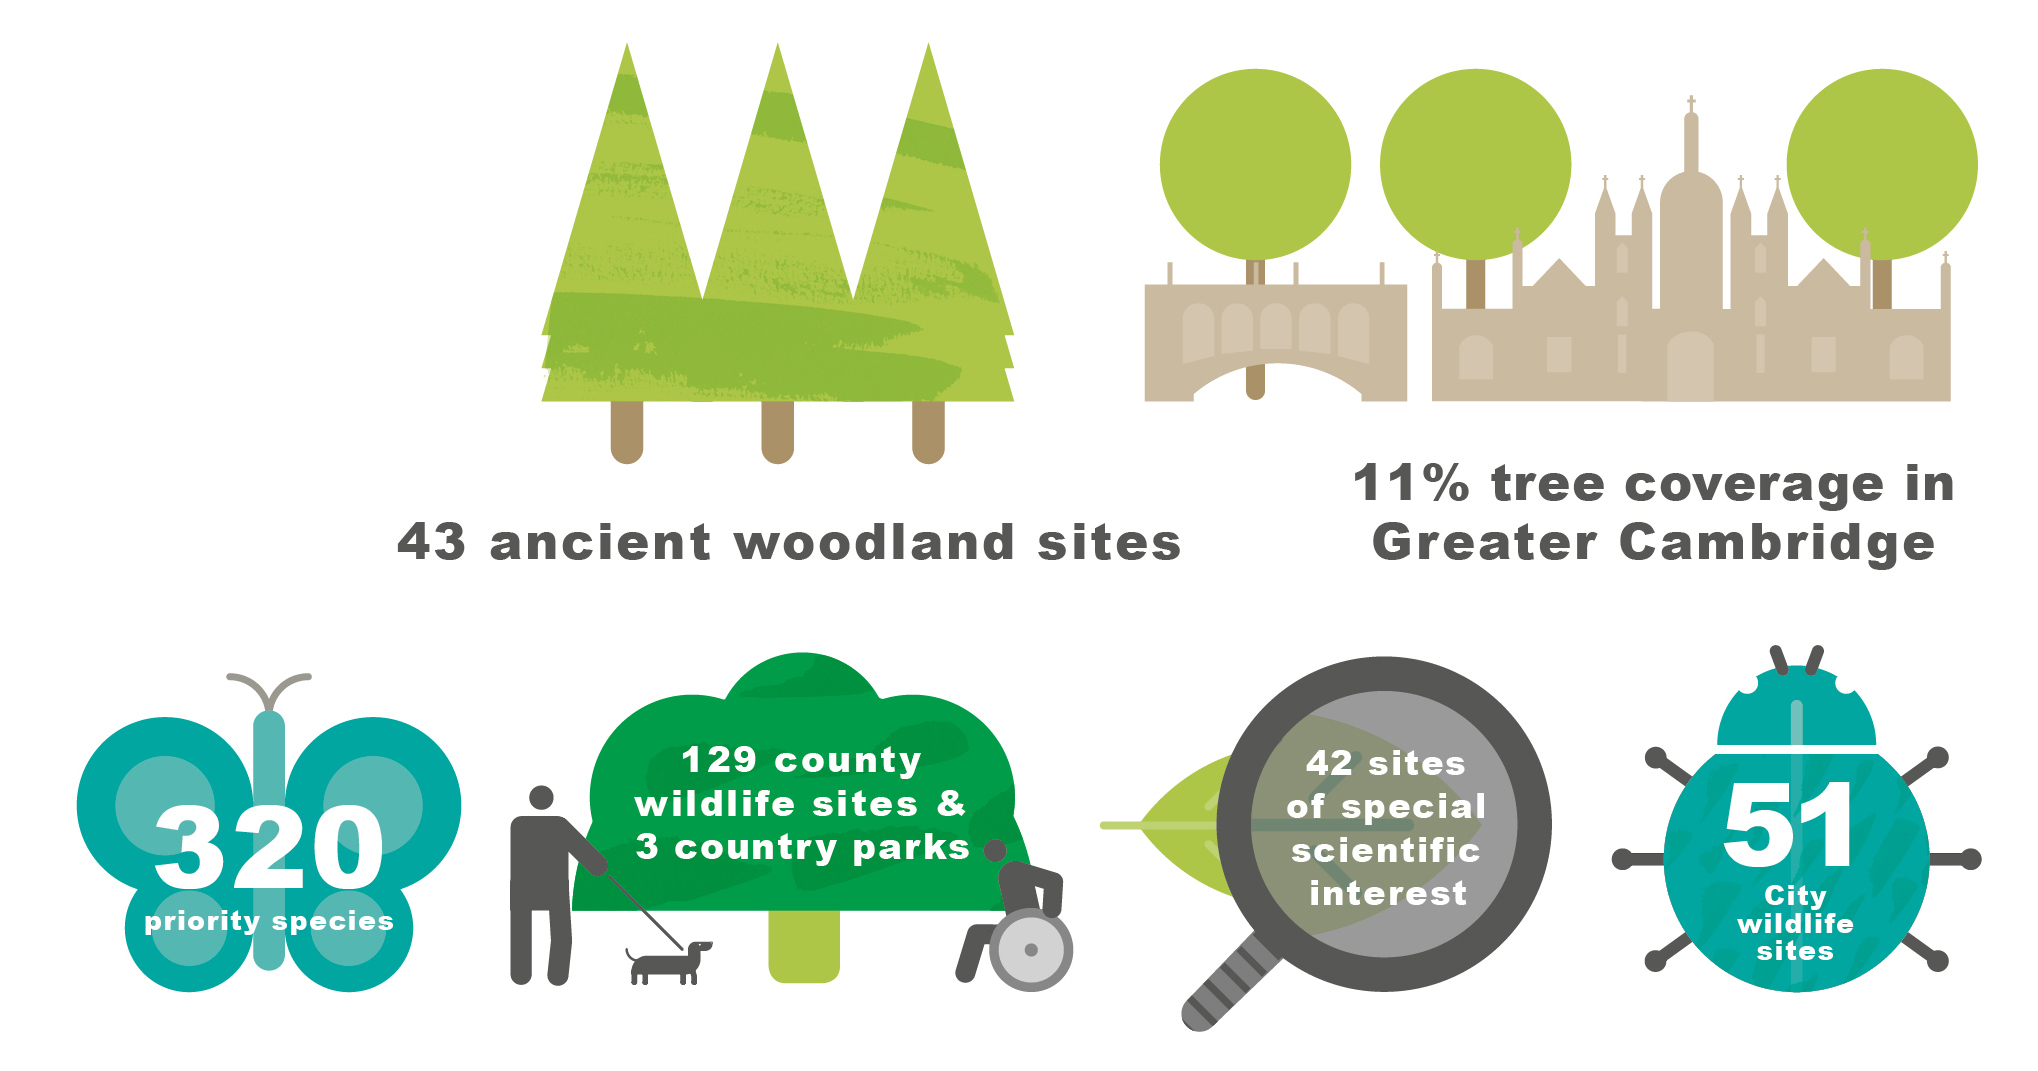 Infographic showing that Greater Cambridge has 42 Sites of Special Scientific Interest; 43 ancient woodland sites; 320 priority species; 129 County Wildlife sites and 51 City Wildlife sites; 3 Country parks and 11% tree cover.